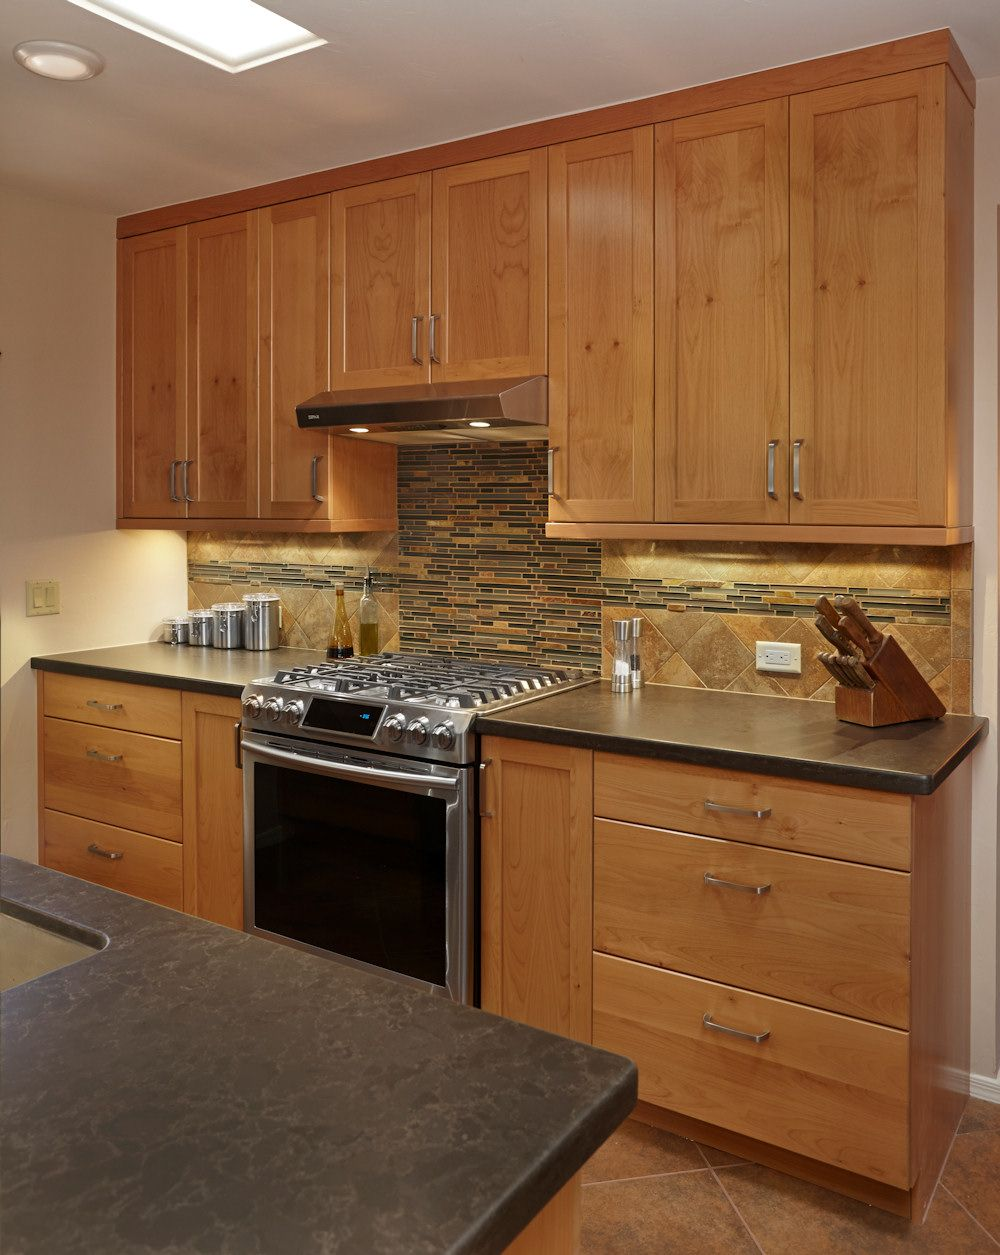 Shaker Craft Classic, Natural cherry cabinetry with black ... on Backsplash Ideas For Black Granite Countertops And Cherry Cabinets  id=12093